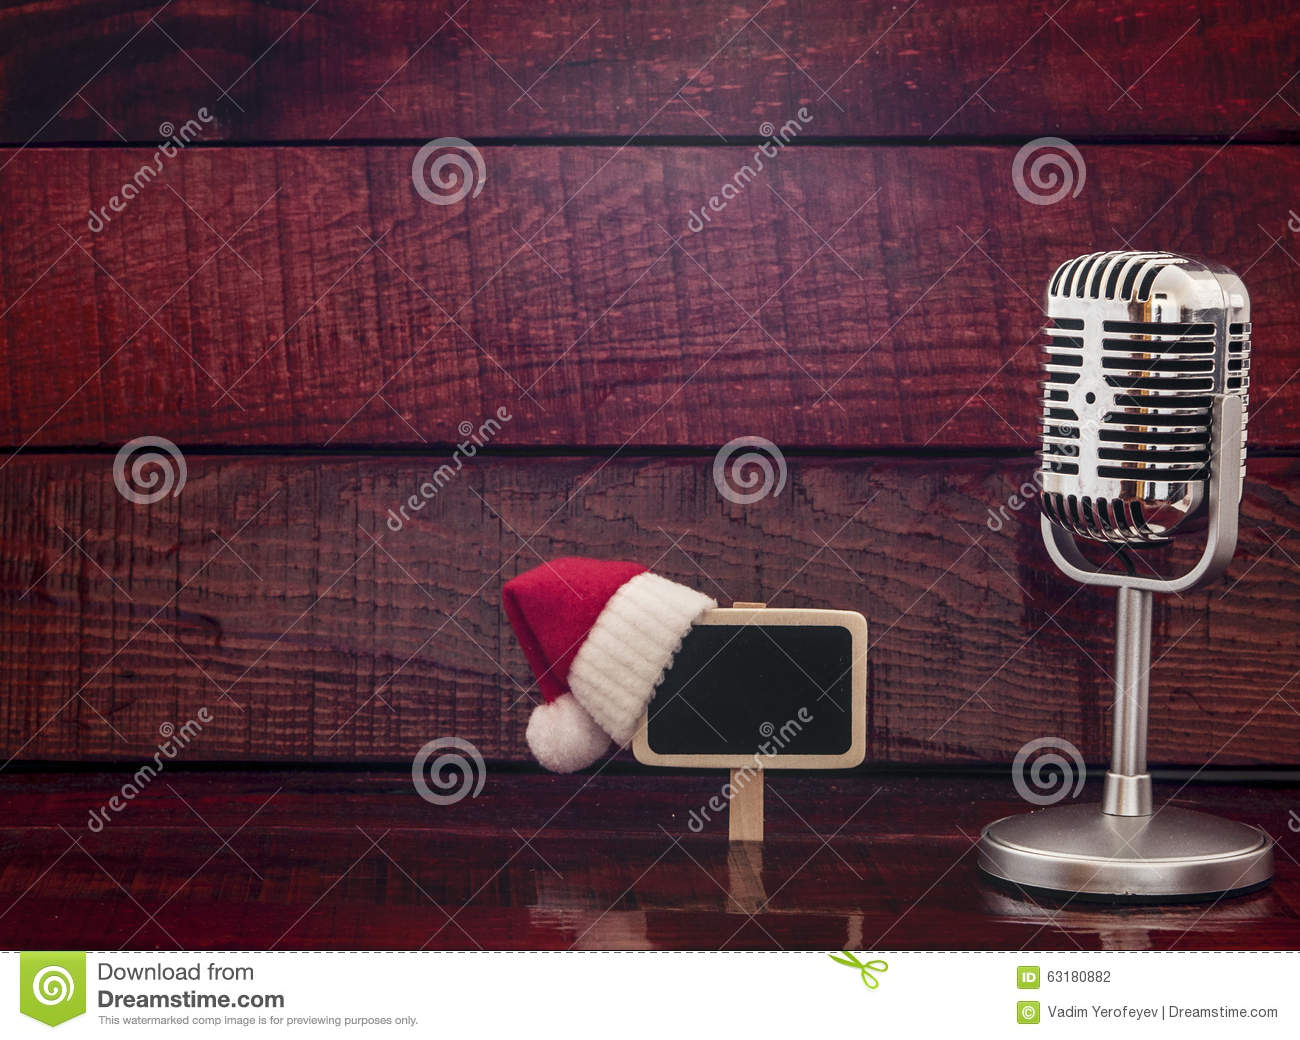 Christmas Songs stock photo. Image of karaoke, band, music - 63180882